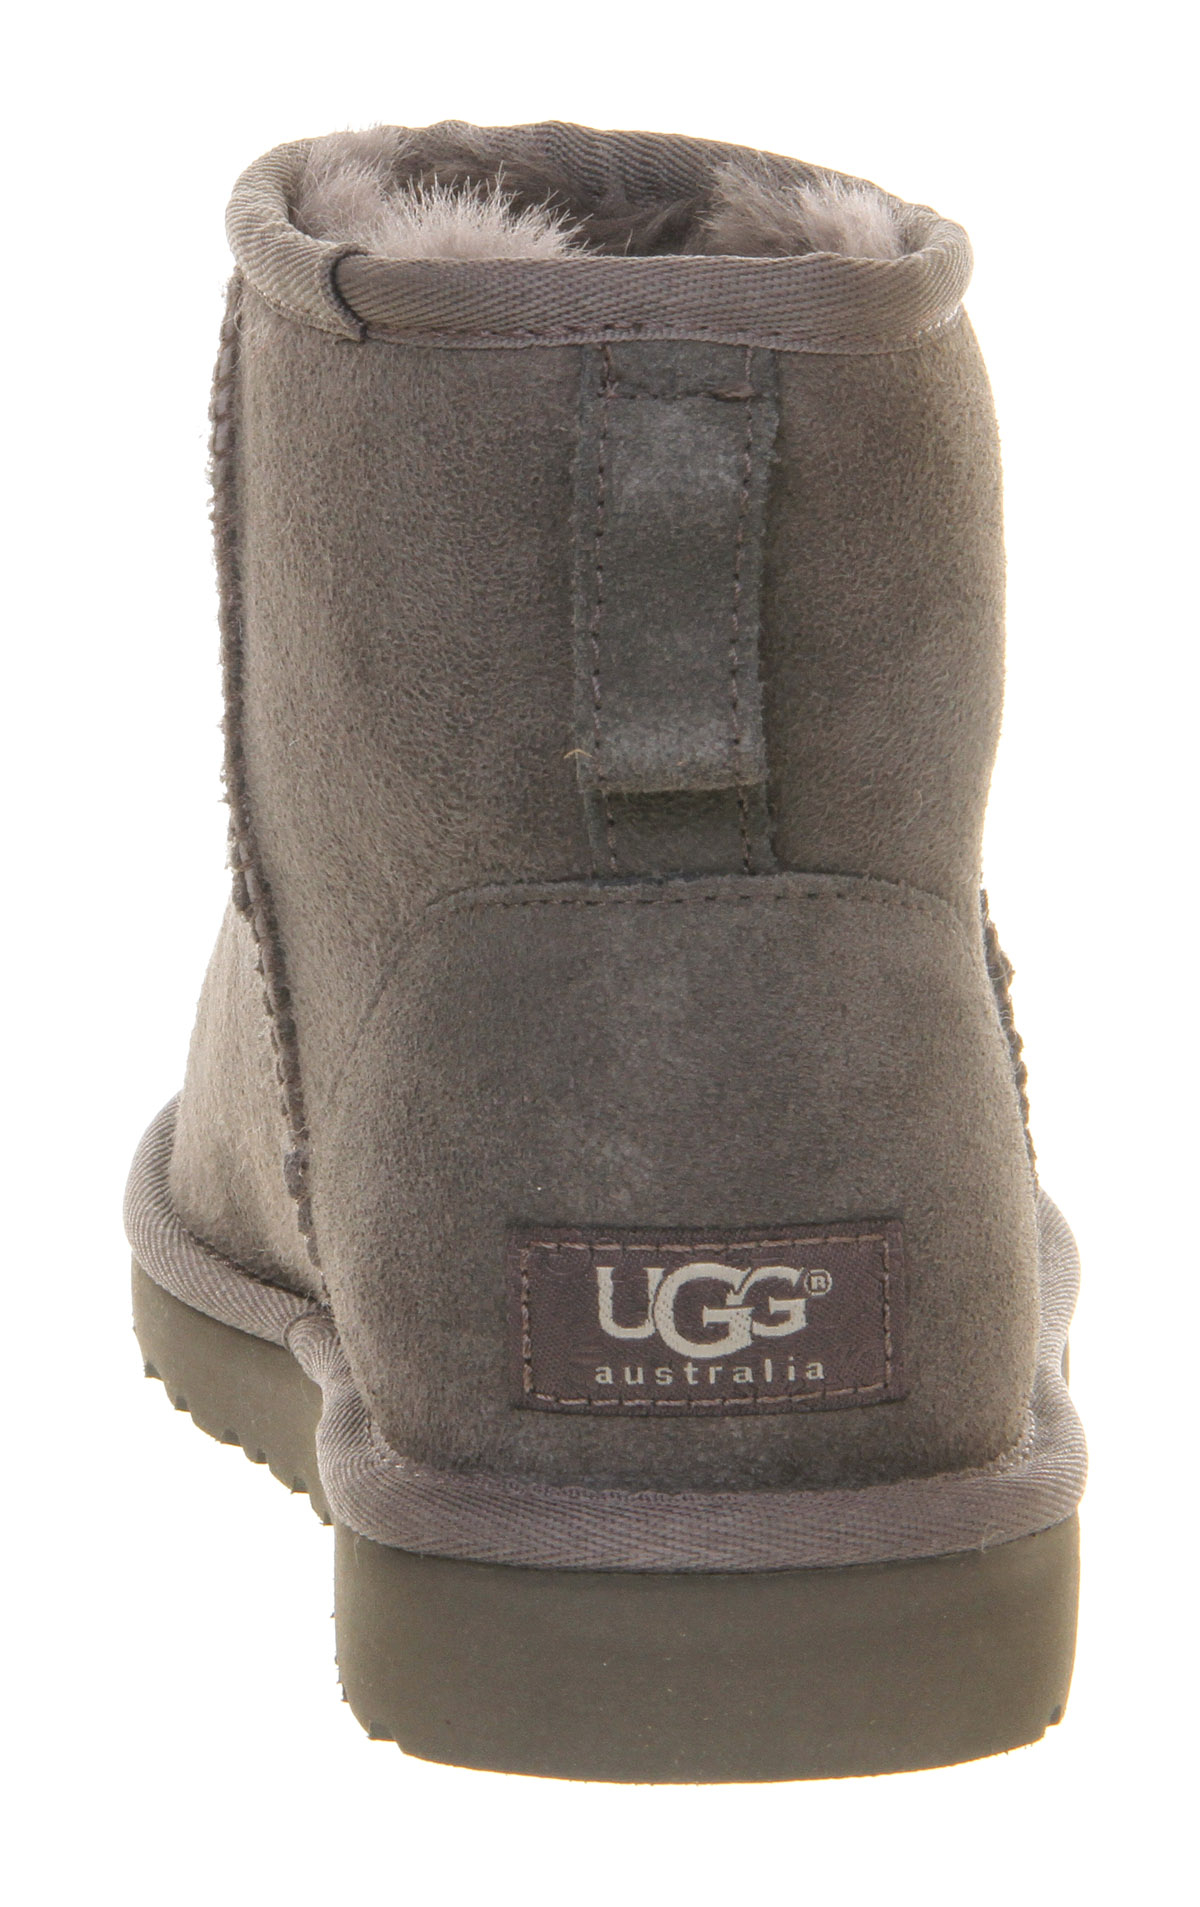 171aba1de1f Ugg Size 5 Equivalent - cheap watches mgc-gas.com